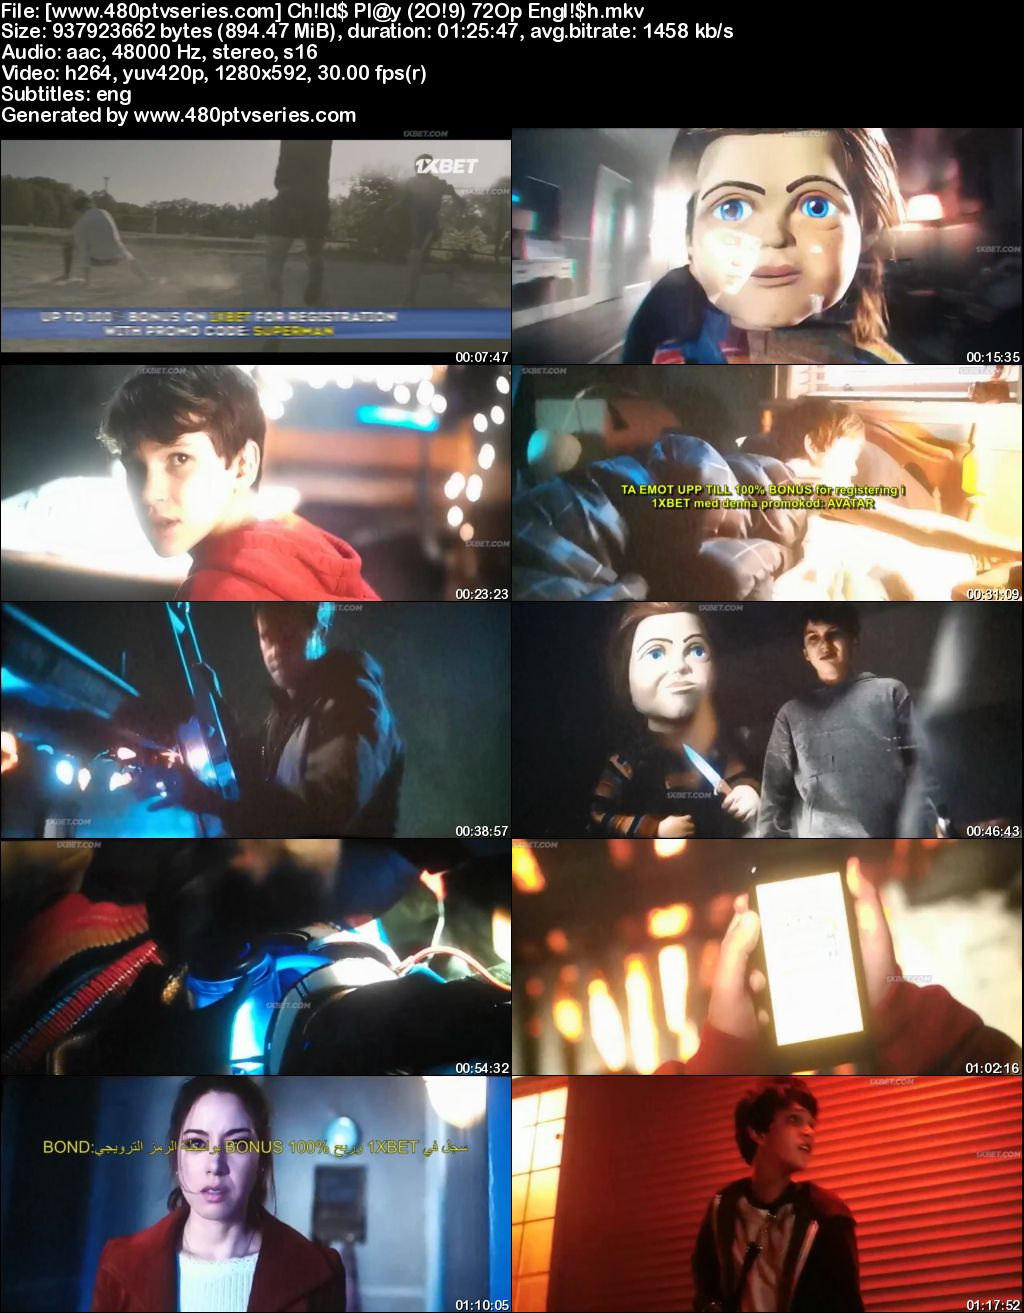 Watch Online Free Child's Play (2019) Full English Movie Download 480p 720p HDCAM